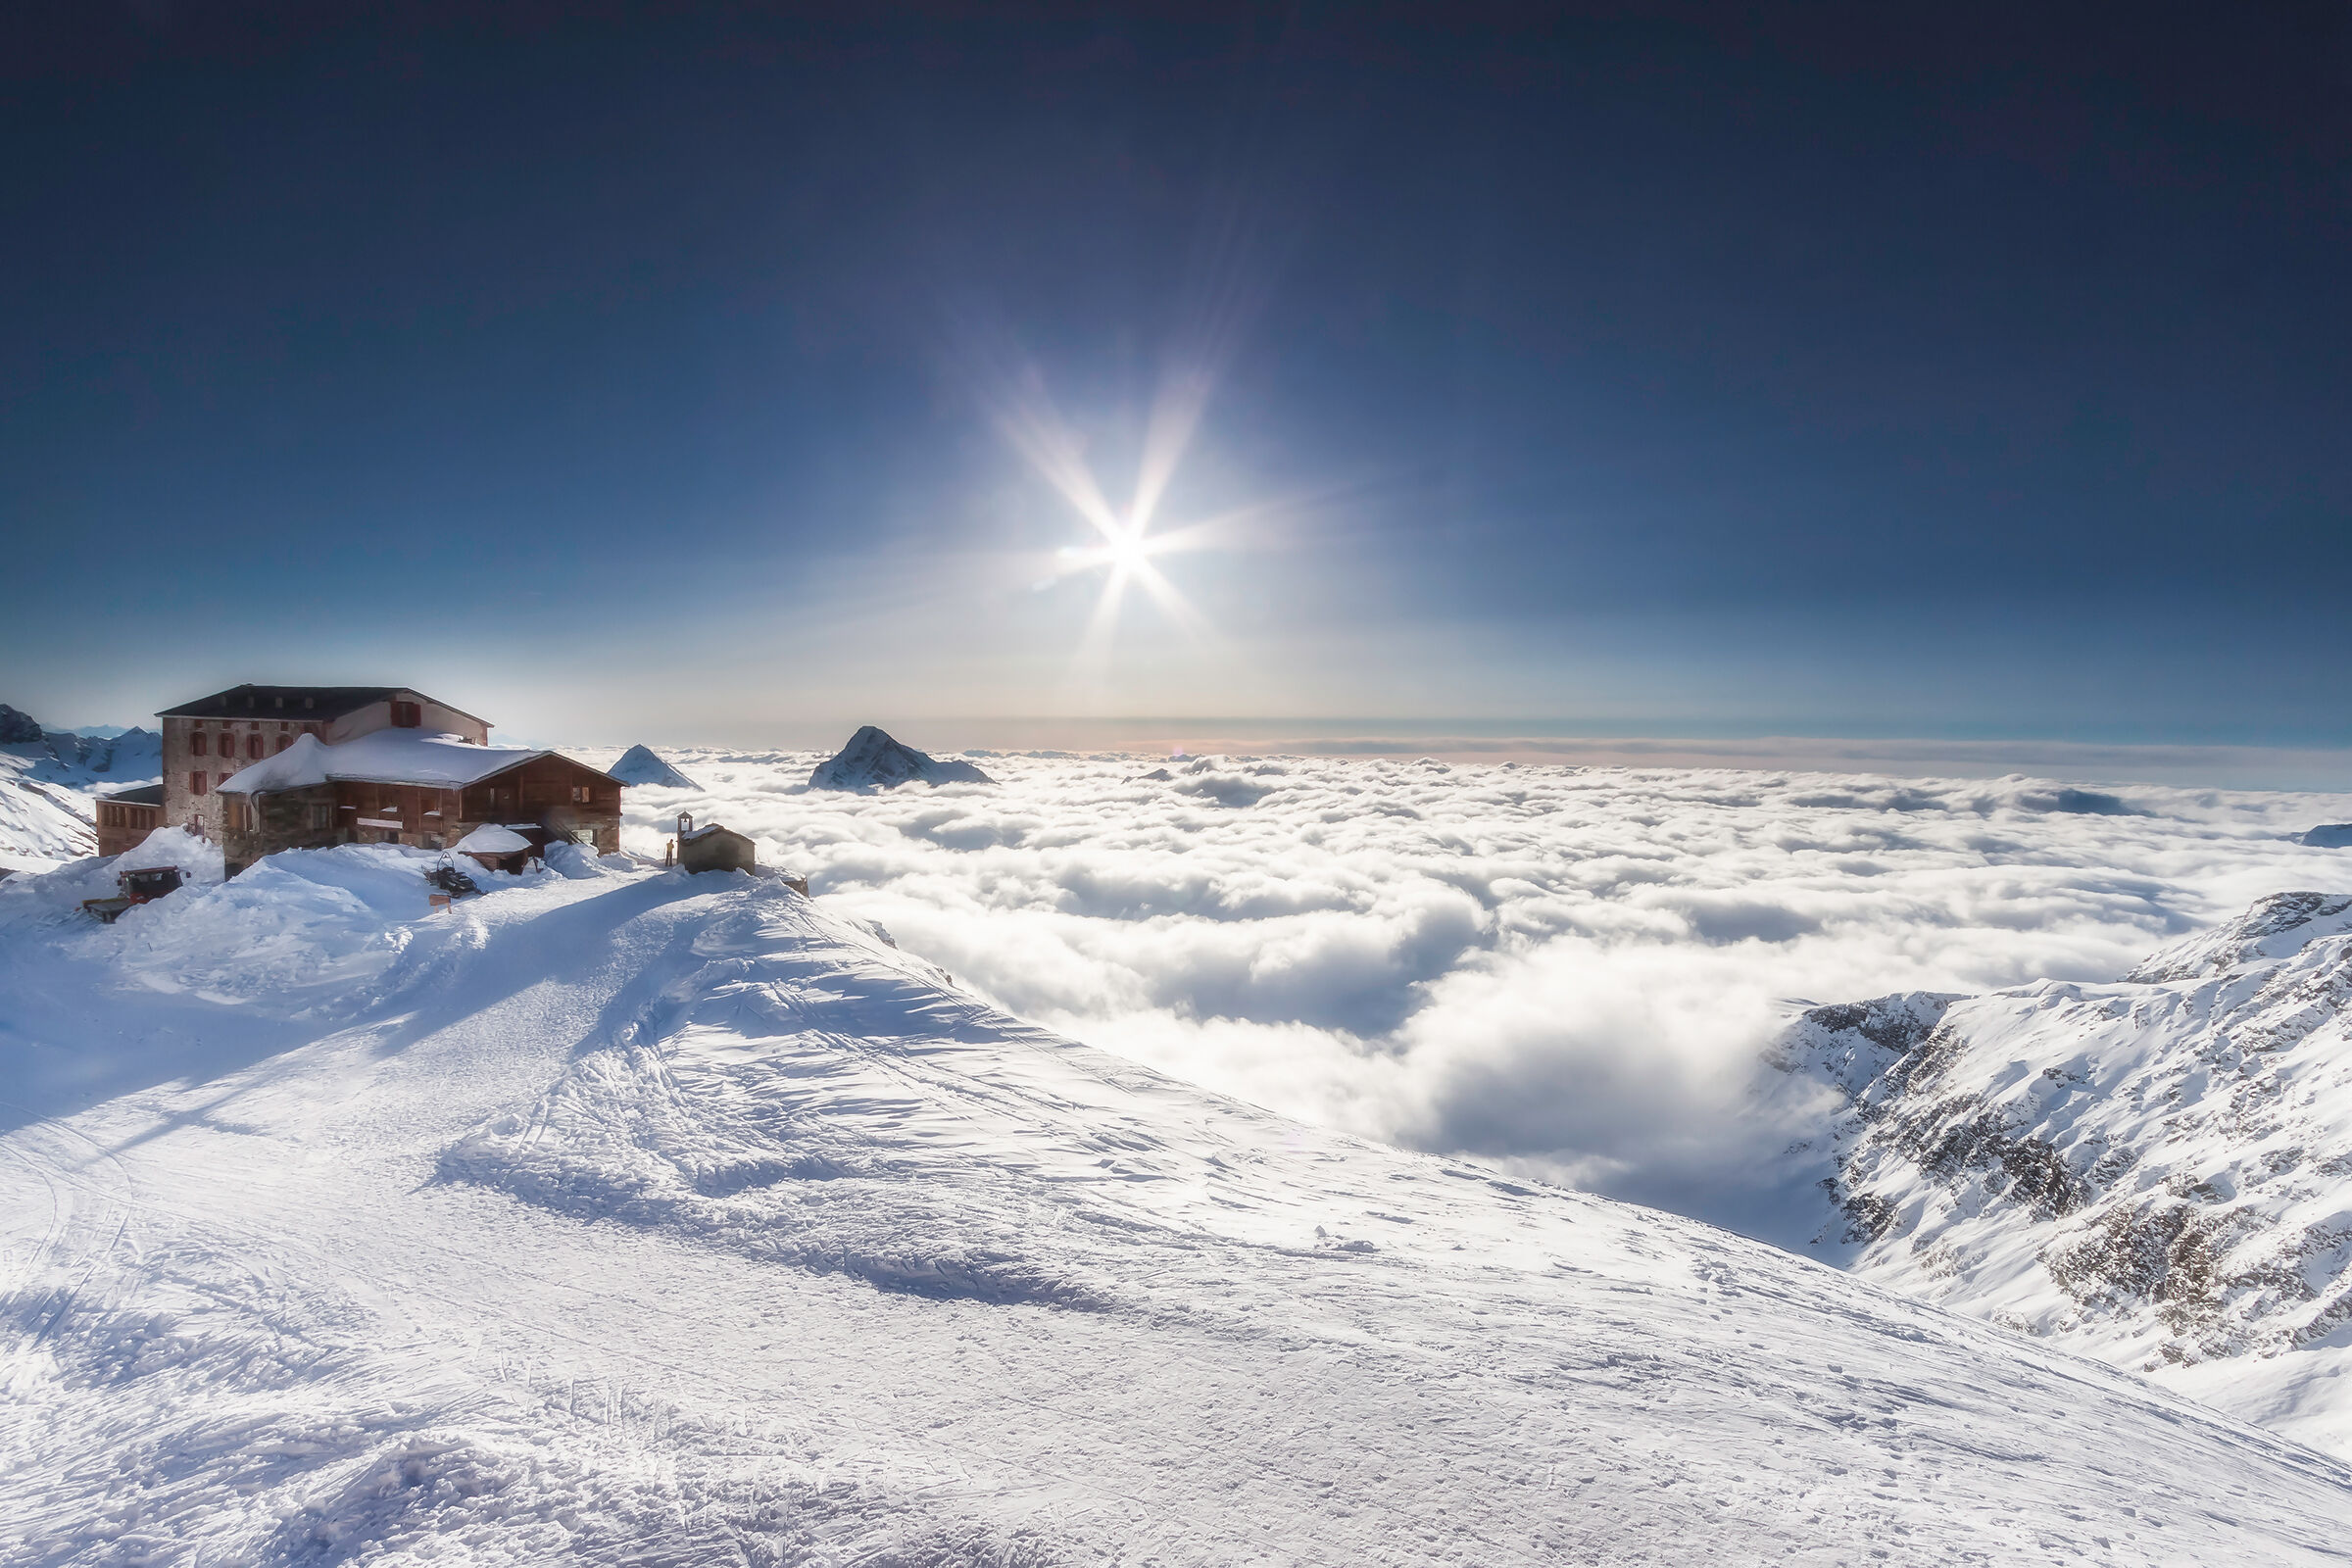 The sky above the clouds...